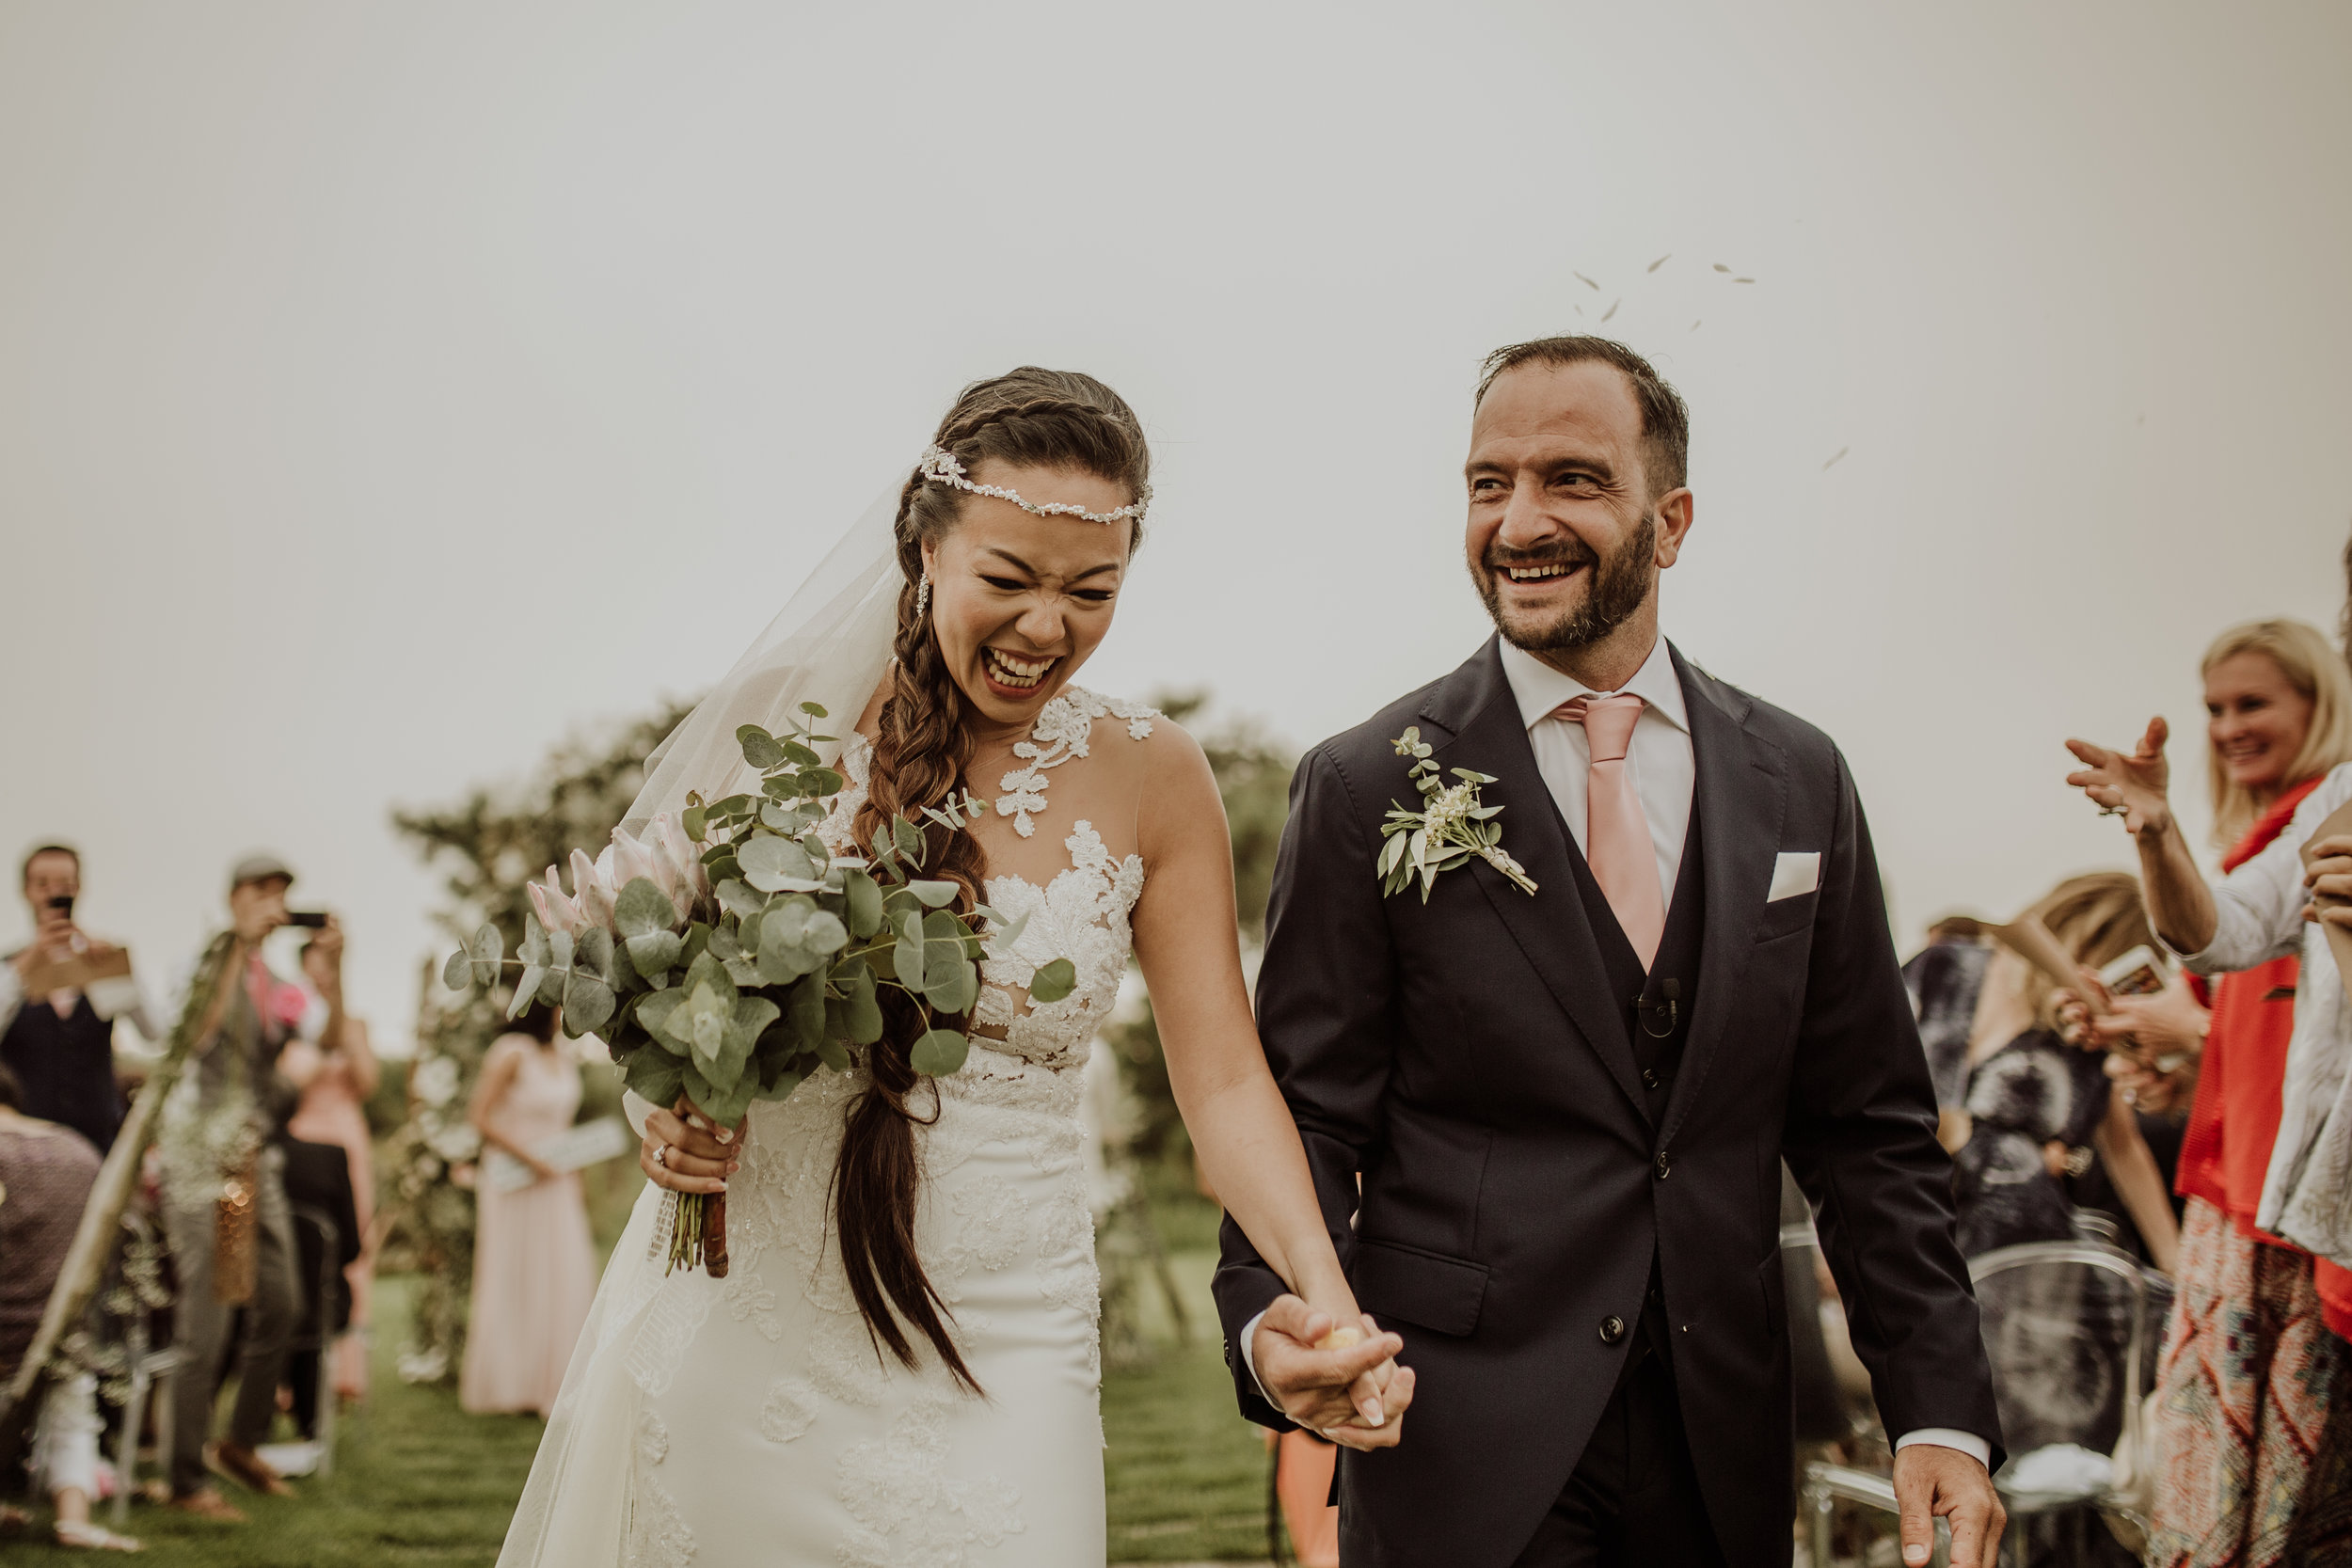 Y&M_746_15_September_2018WEDDING_DAY.jpg